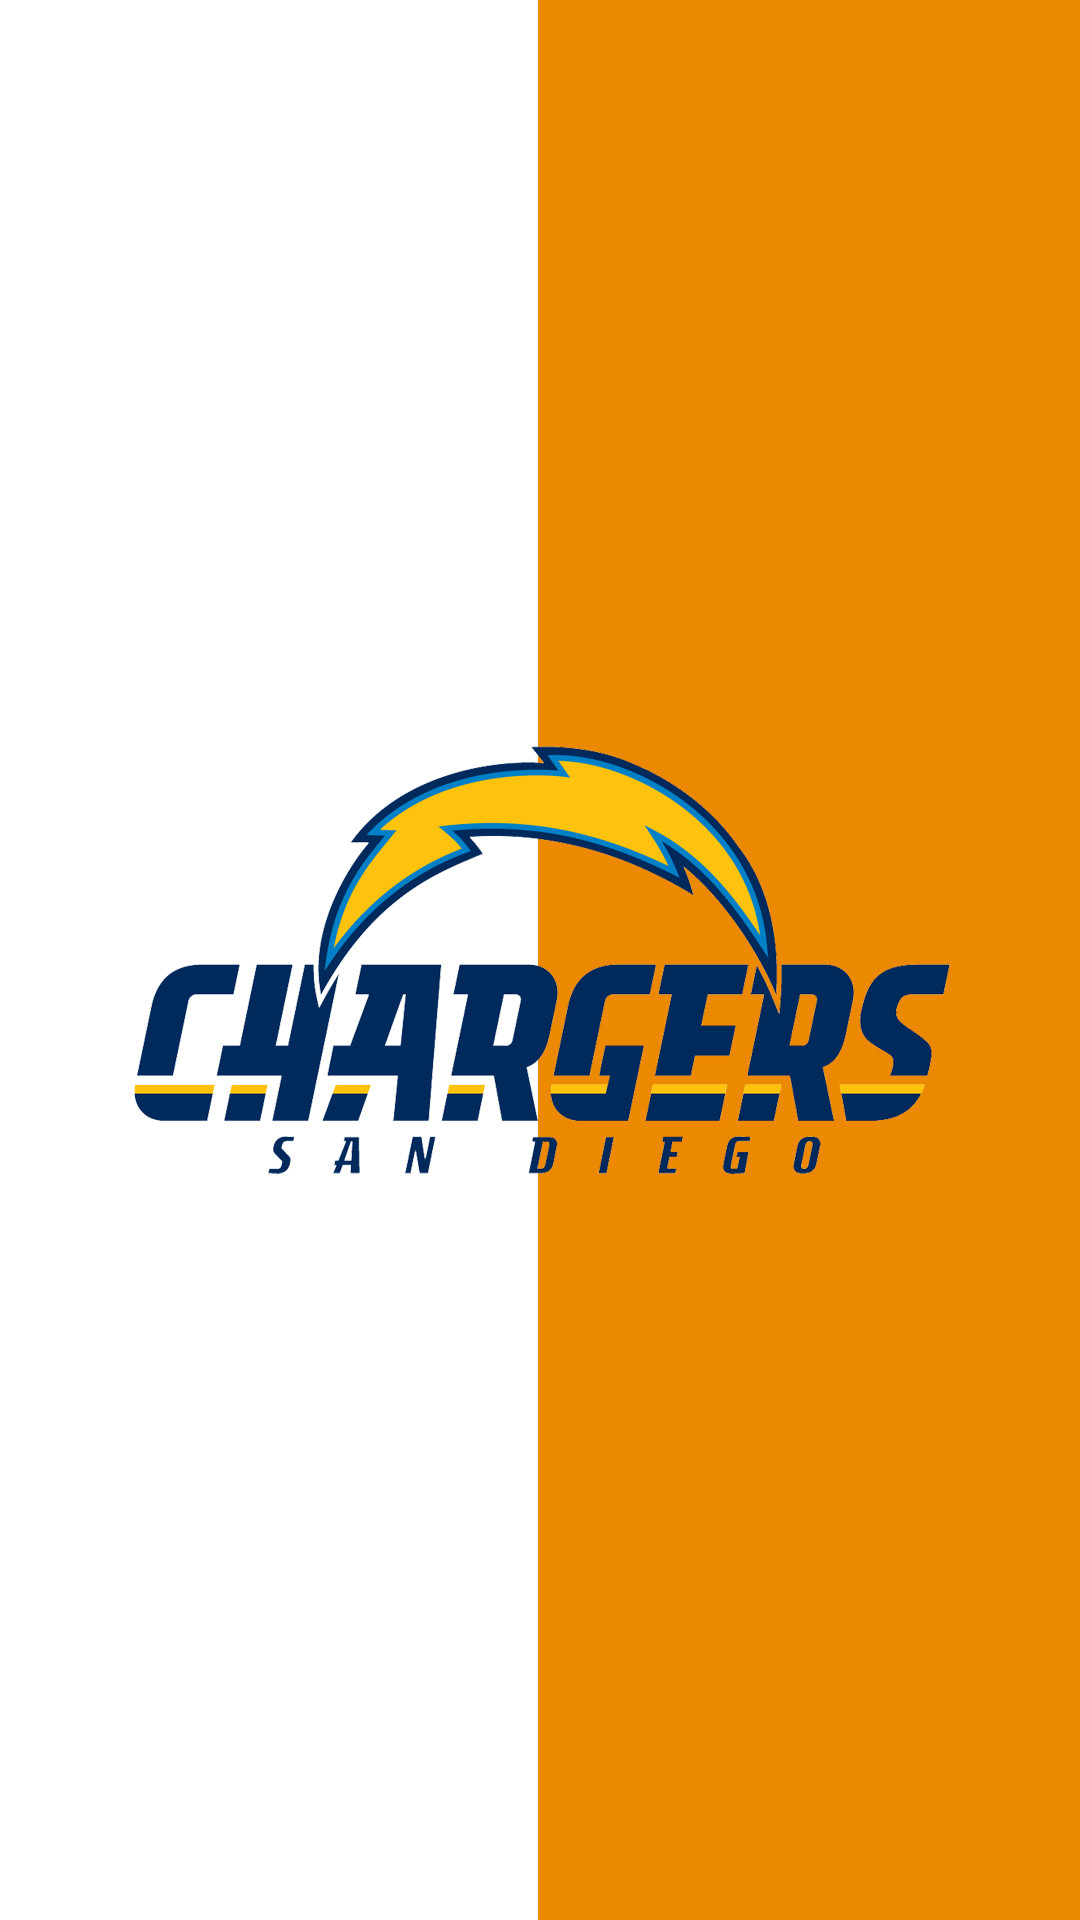 1080x1920 San Diego Chargers Wallpaper iPhone by Mattiebonez San Diego Chargers  Wallpaper iPhone by Mattiebonez